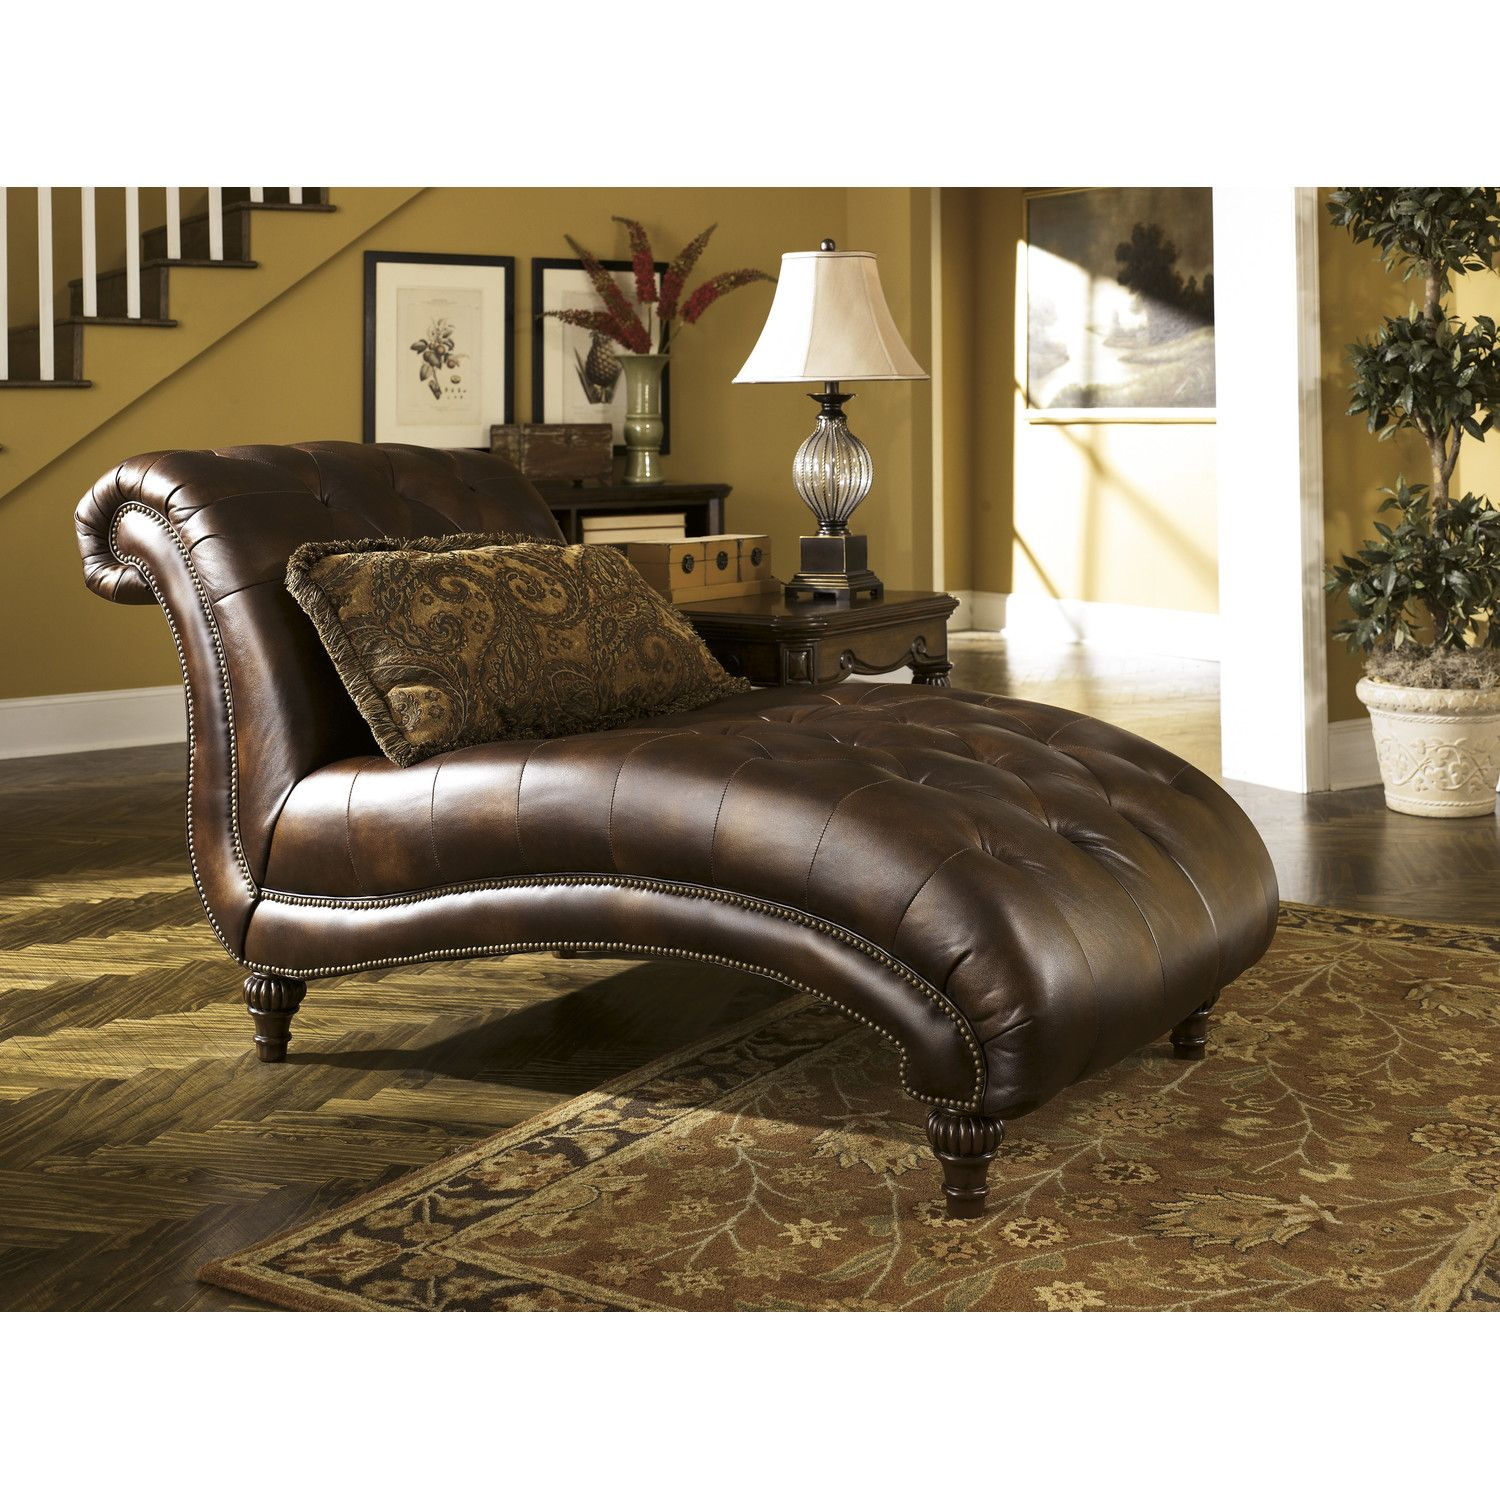 Signature Design by Ashley Alexandria Chaise Lounge | Wayfair ...